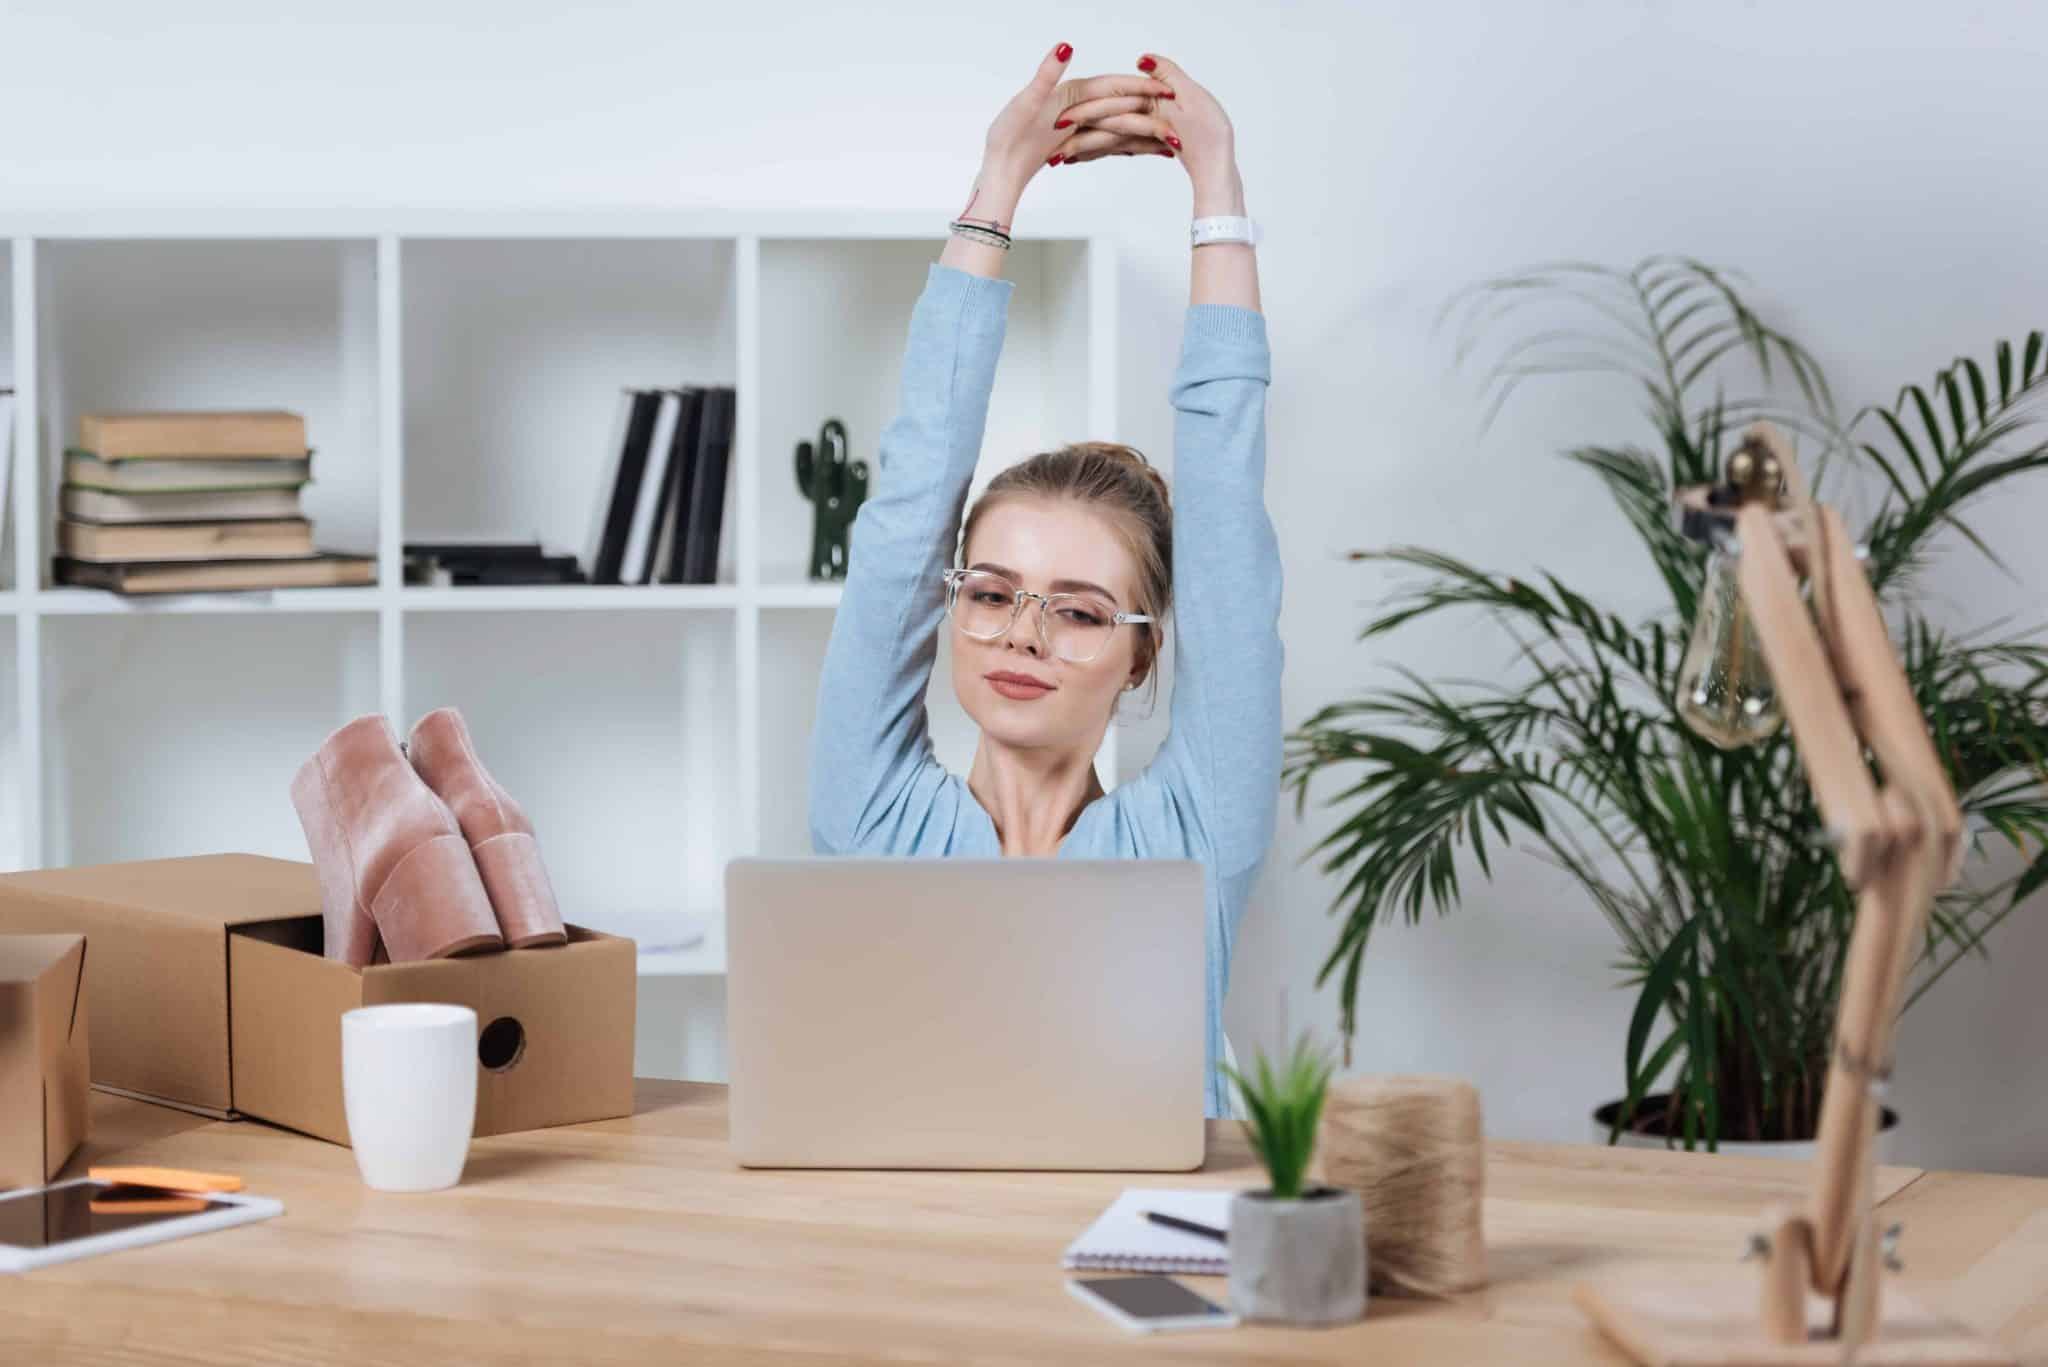 work from home jobs for mums - a woman stretching at her computer with a box of shoes ready to ship and sell online